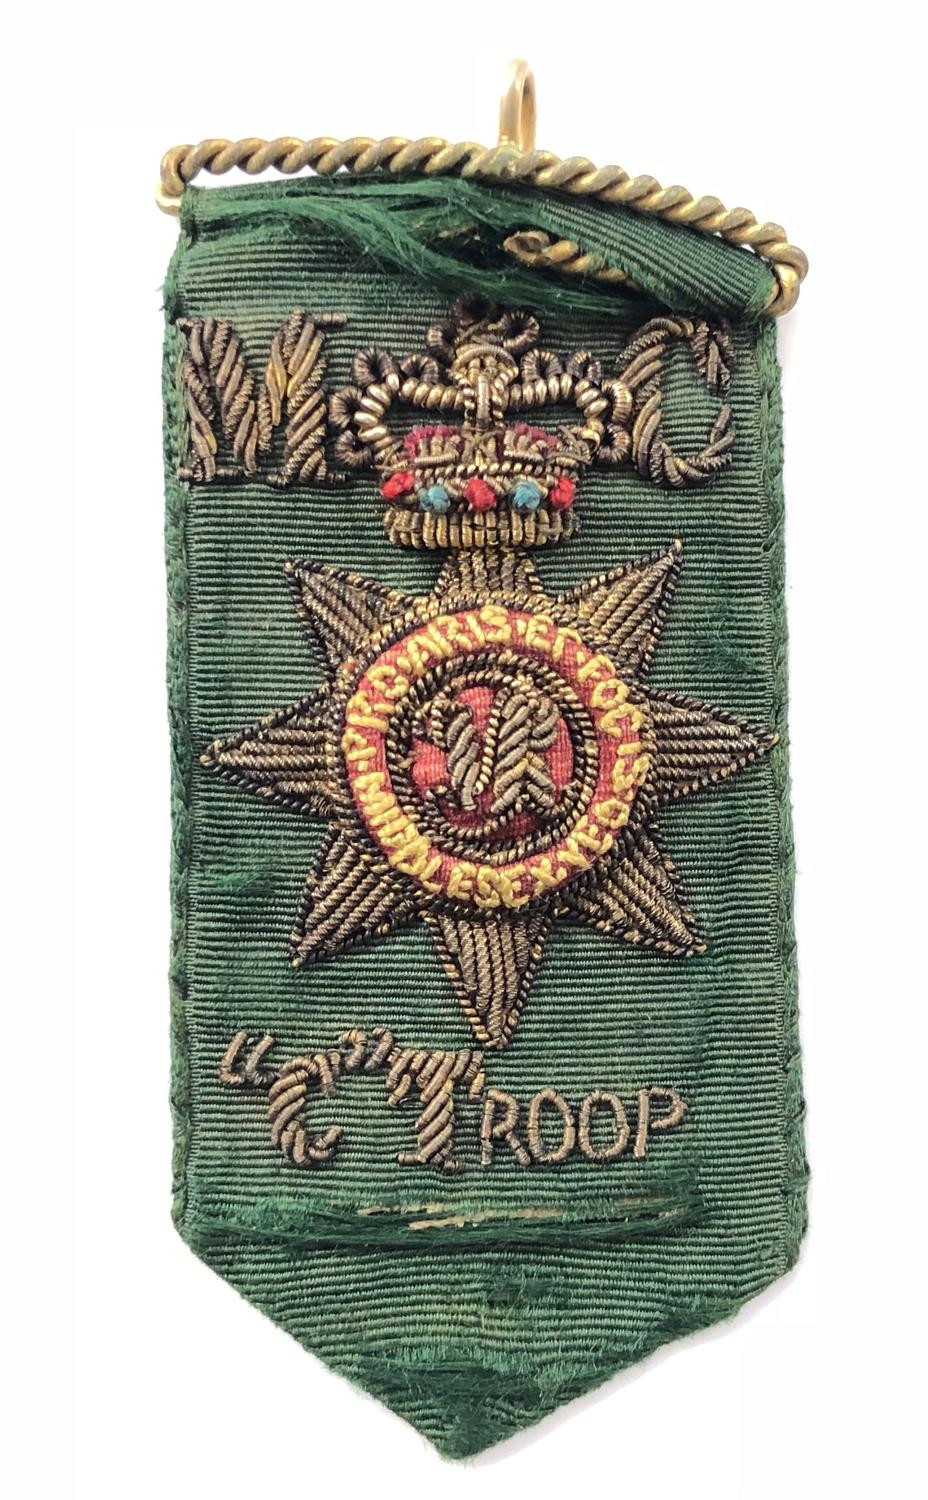 Middlesex Yeomanry C Troop Master of Ceromonies Badge